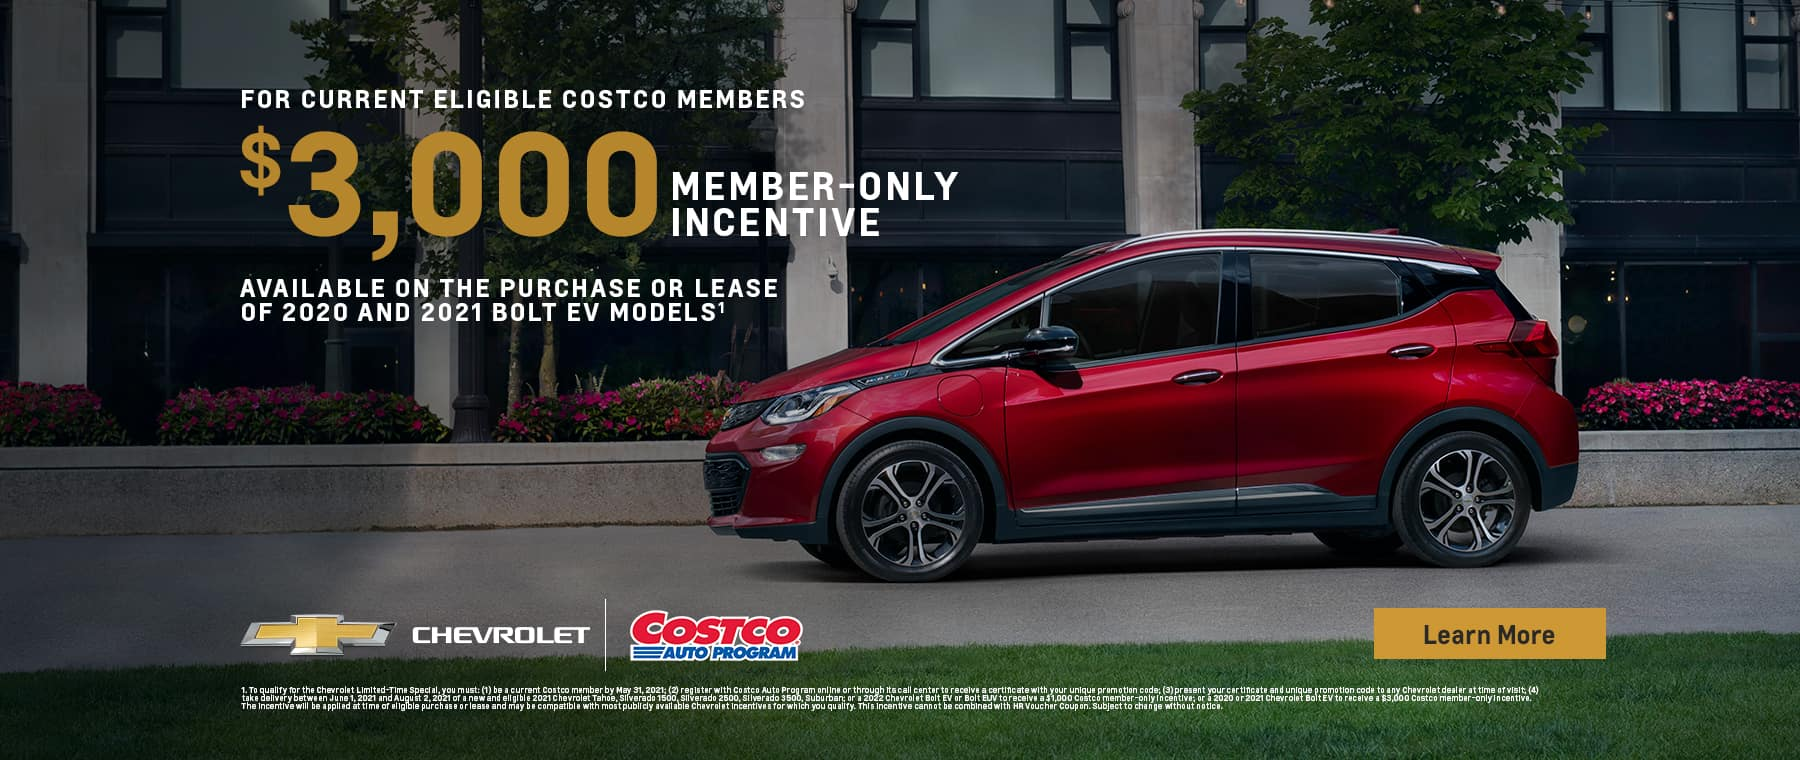 Costco Members-only Incentives on Select Vehicles